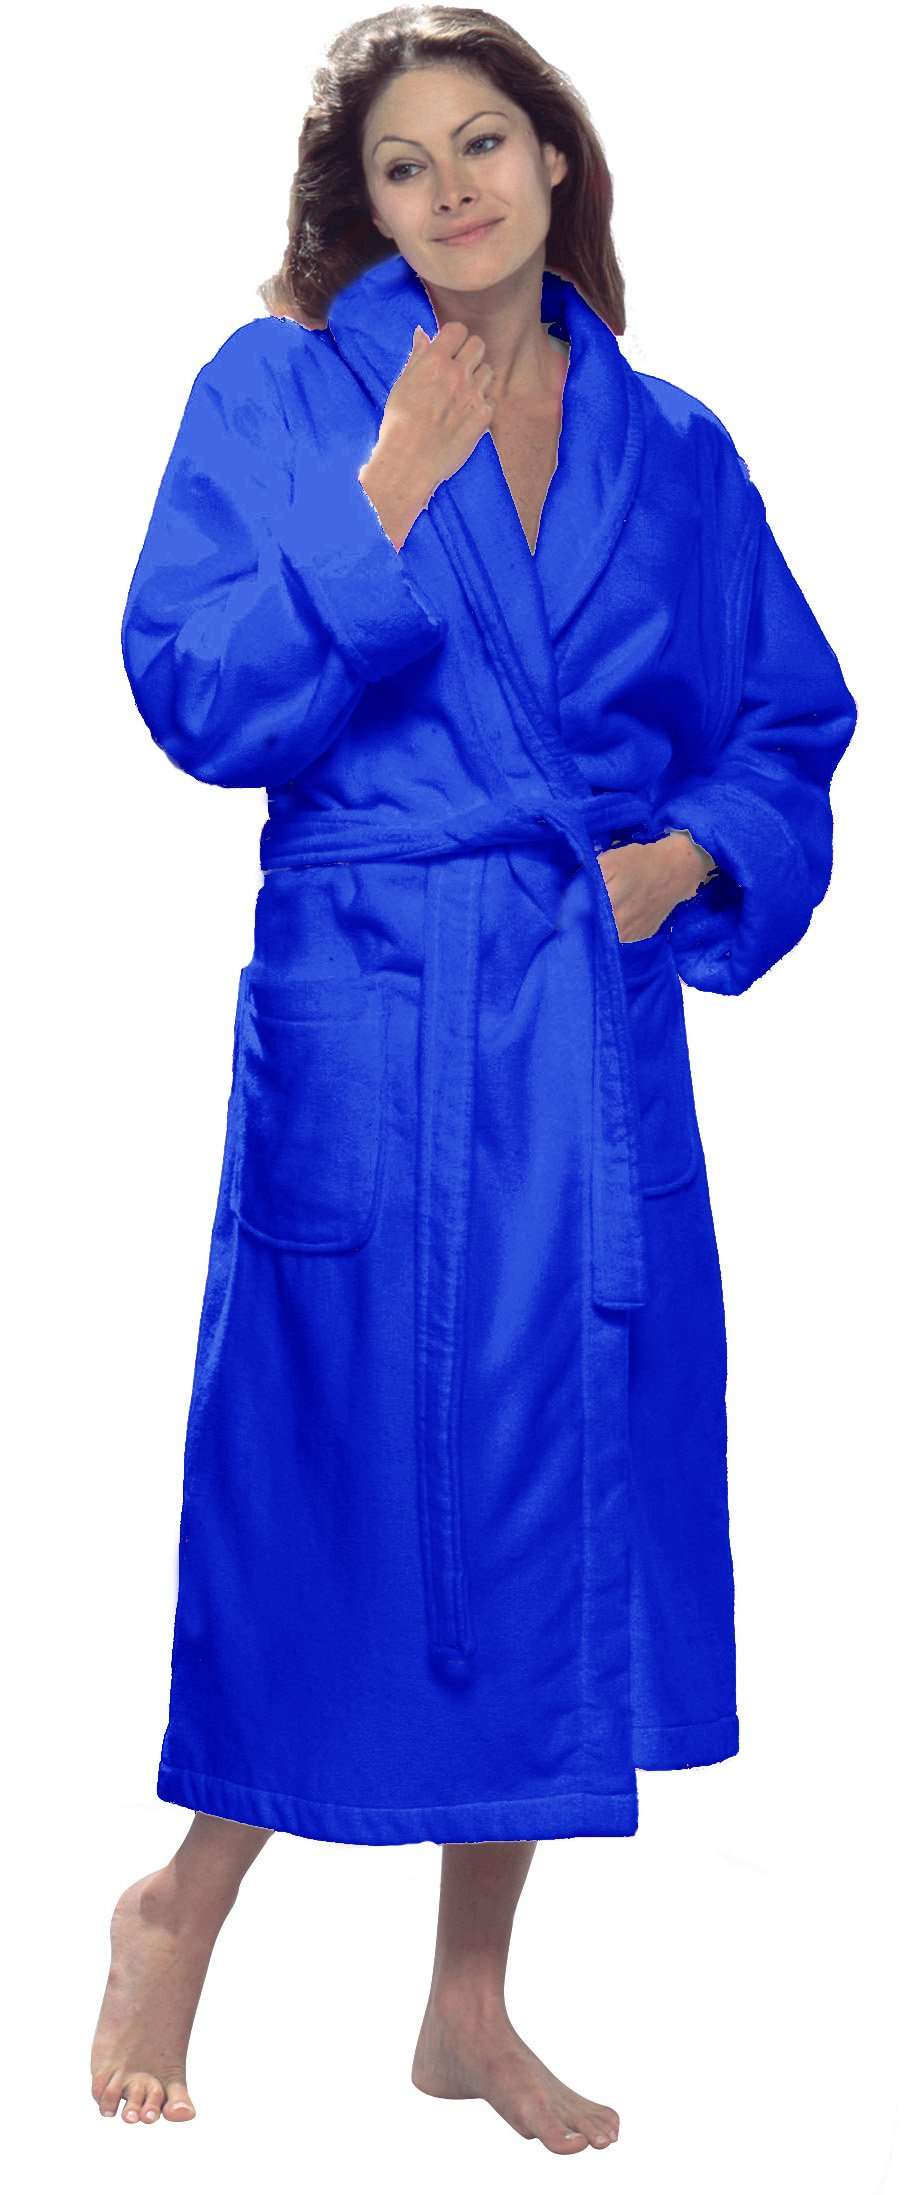 Customized Shawl Robe for Men and Women, Size SMALL / MEDIUM, ROYAL